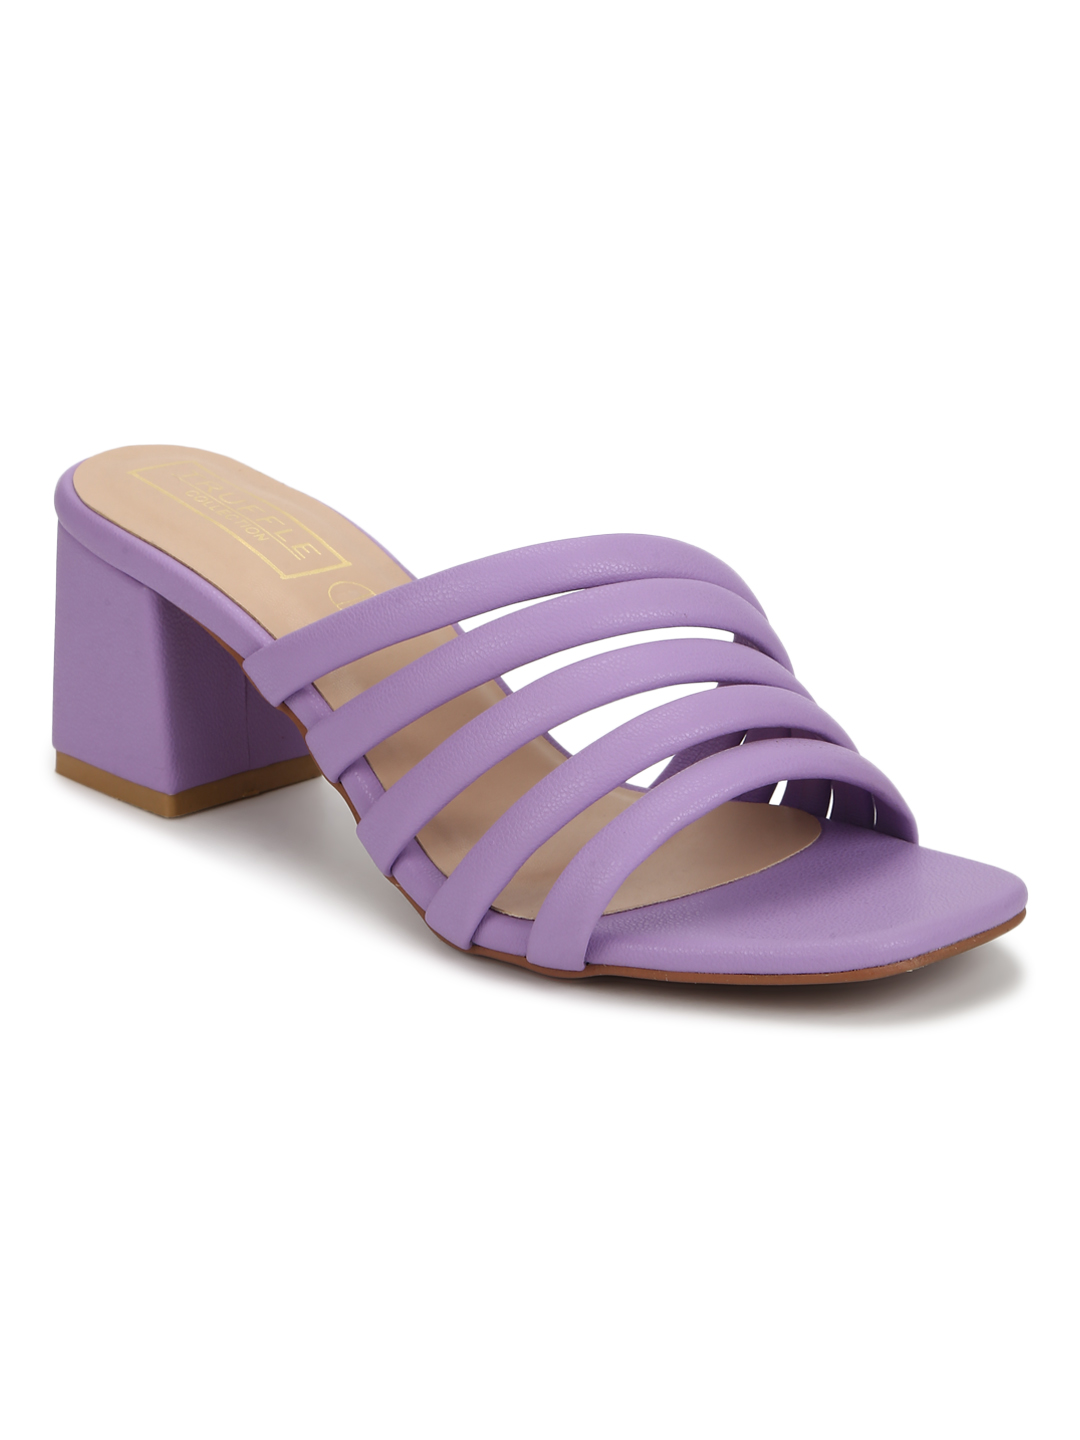 Truffle Collection | Truffle Collection Lilac Purple PU Strappy Mules